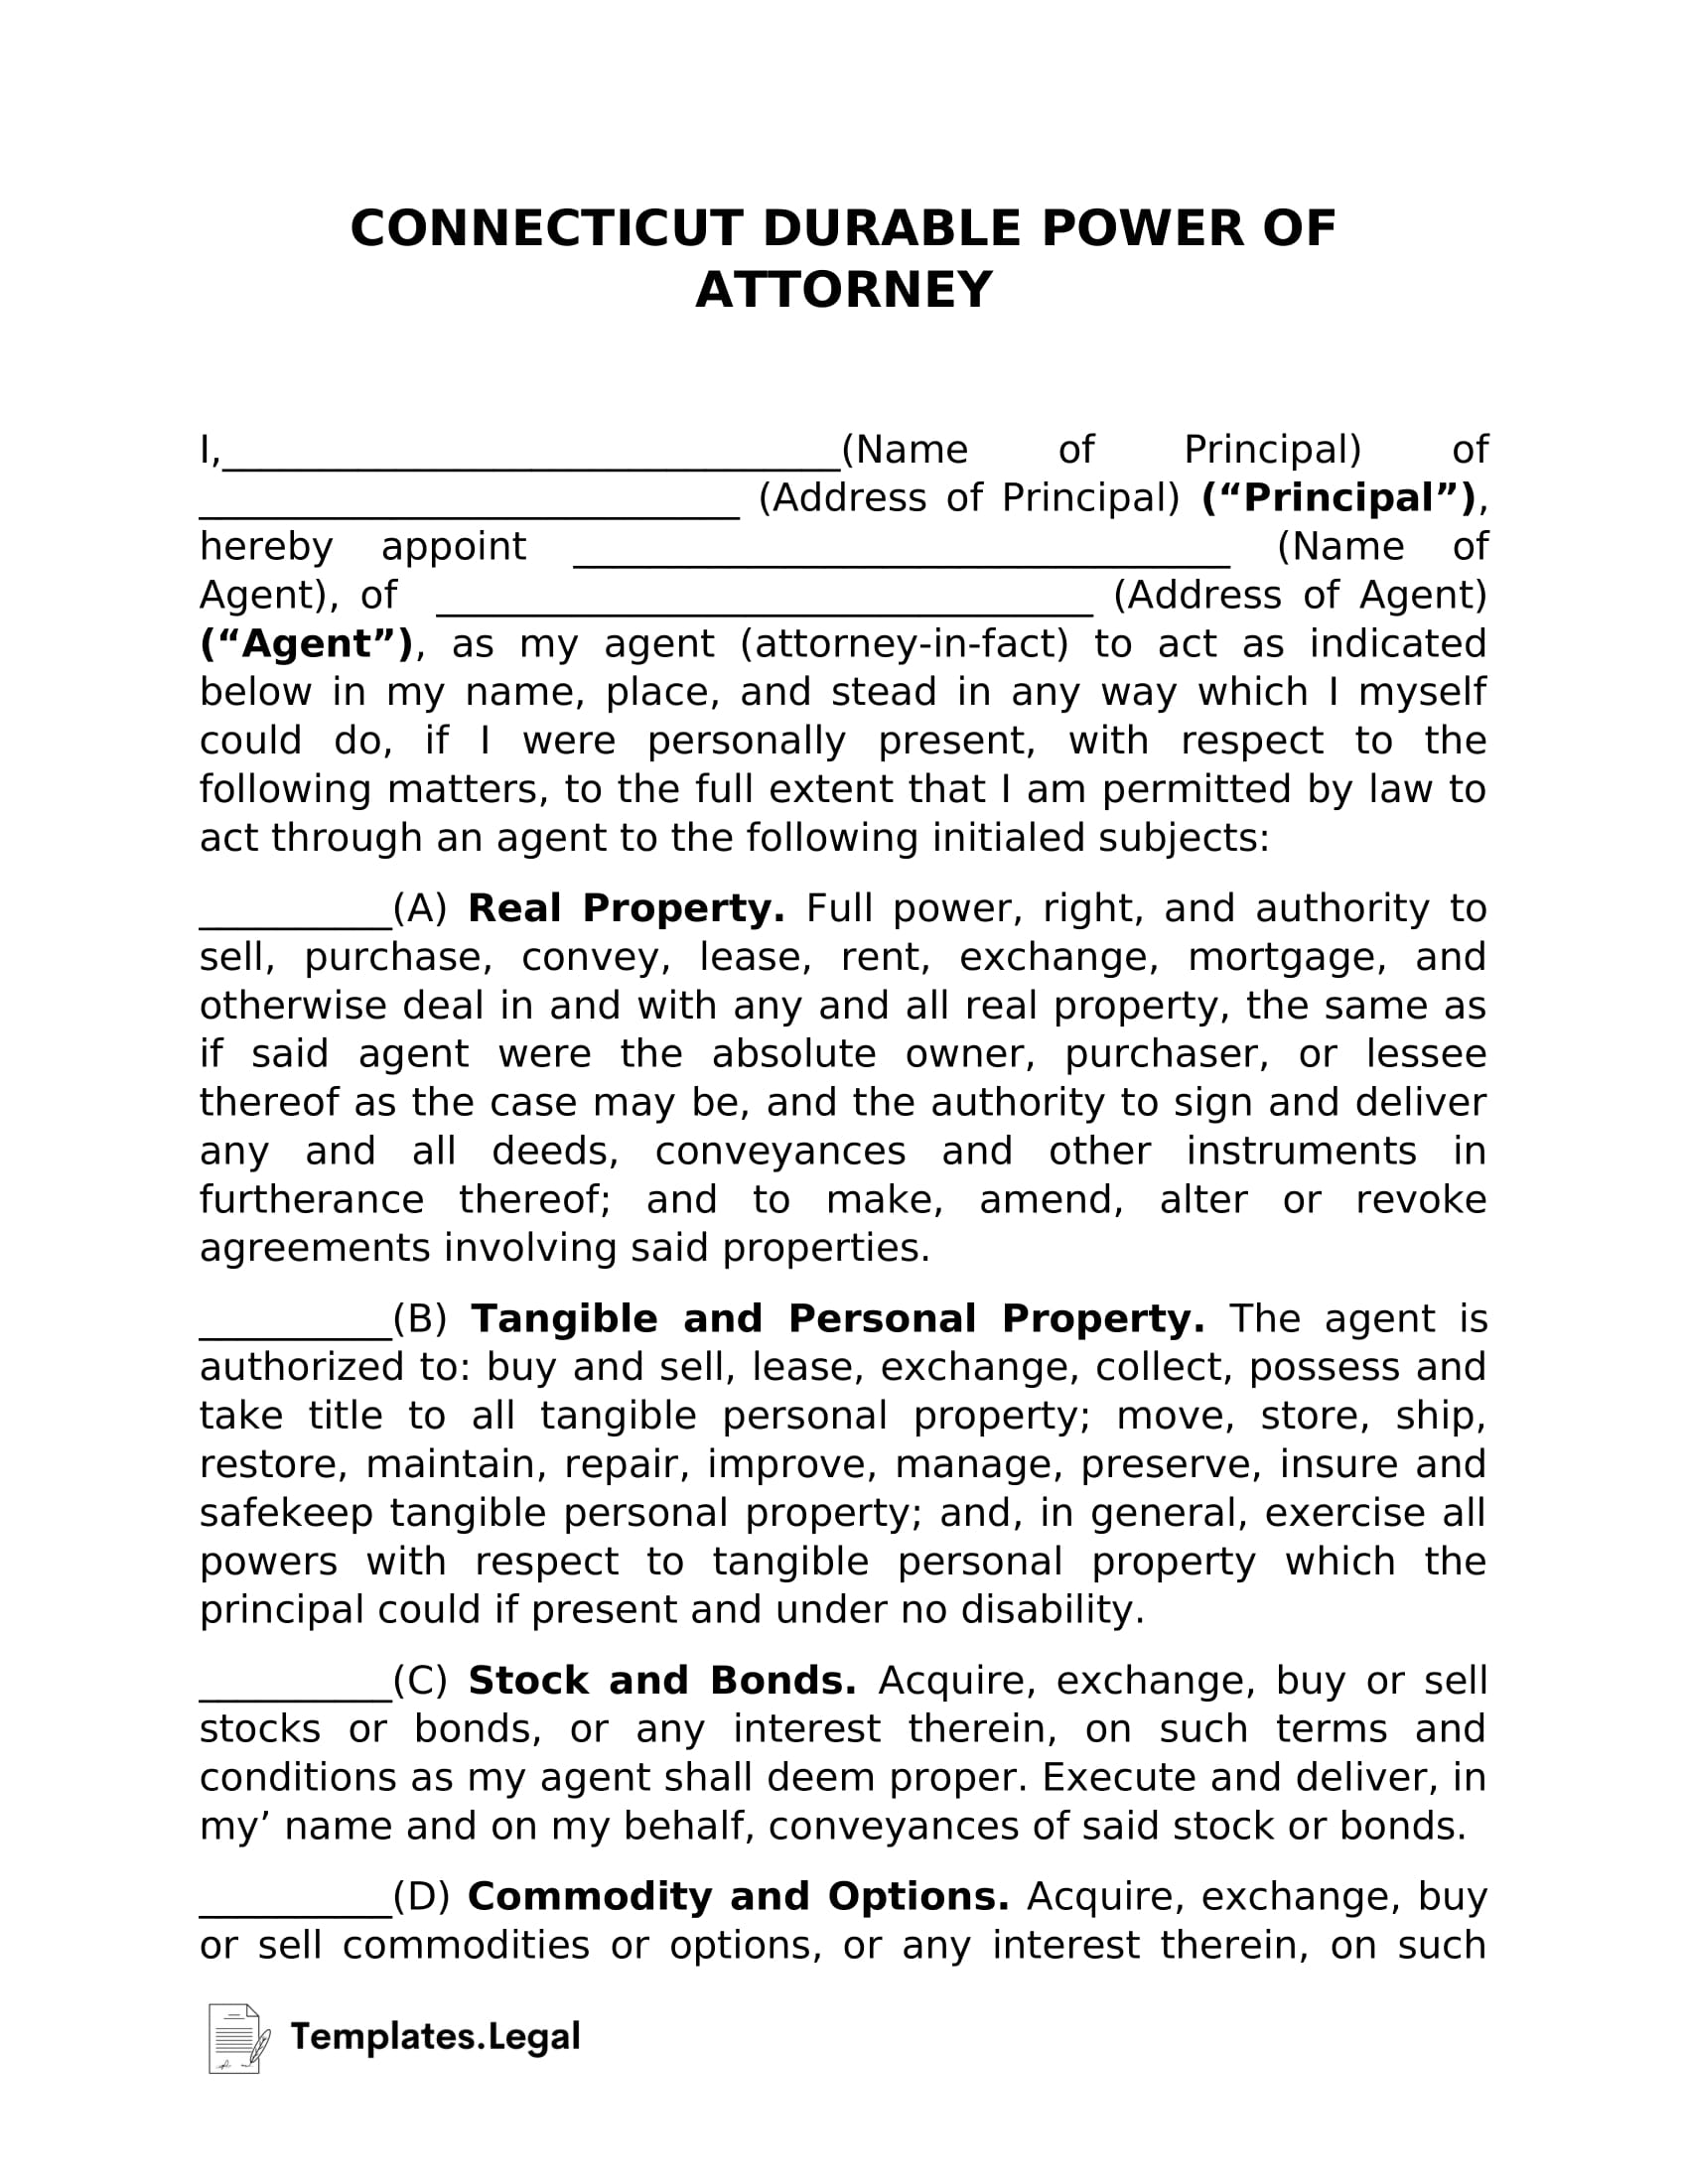 Connecticut Durable Power of Attorney - Templates.Legal